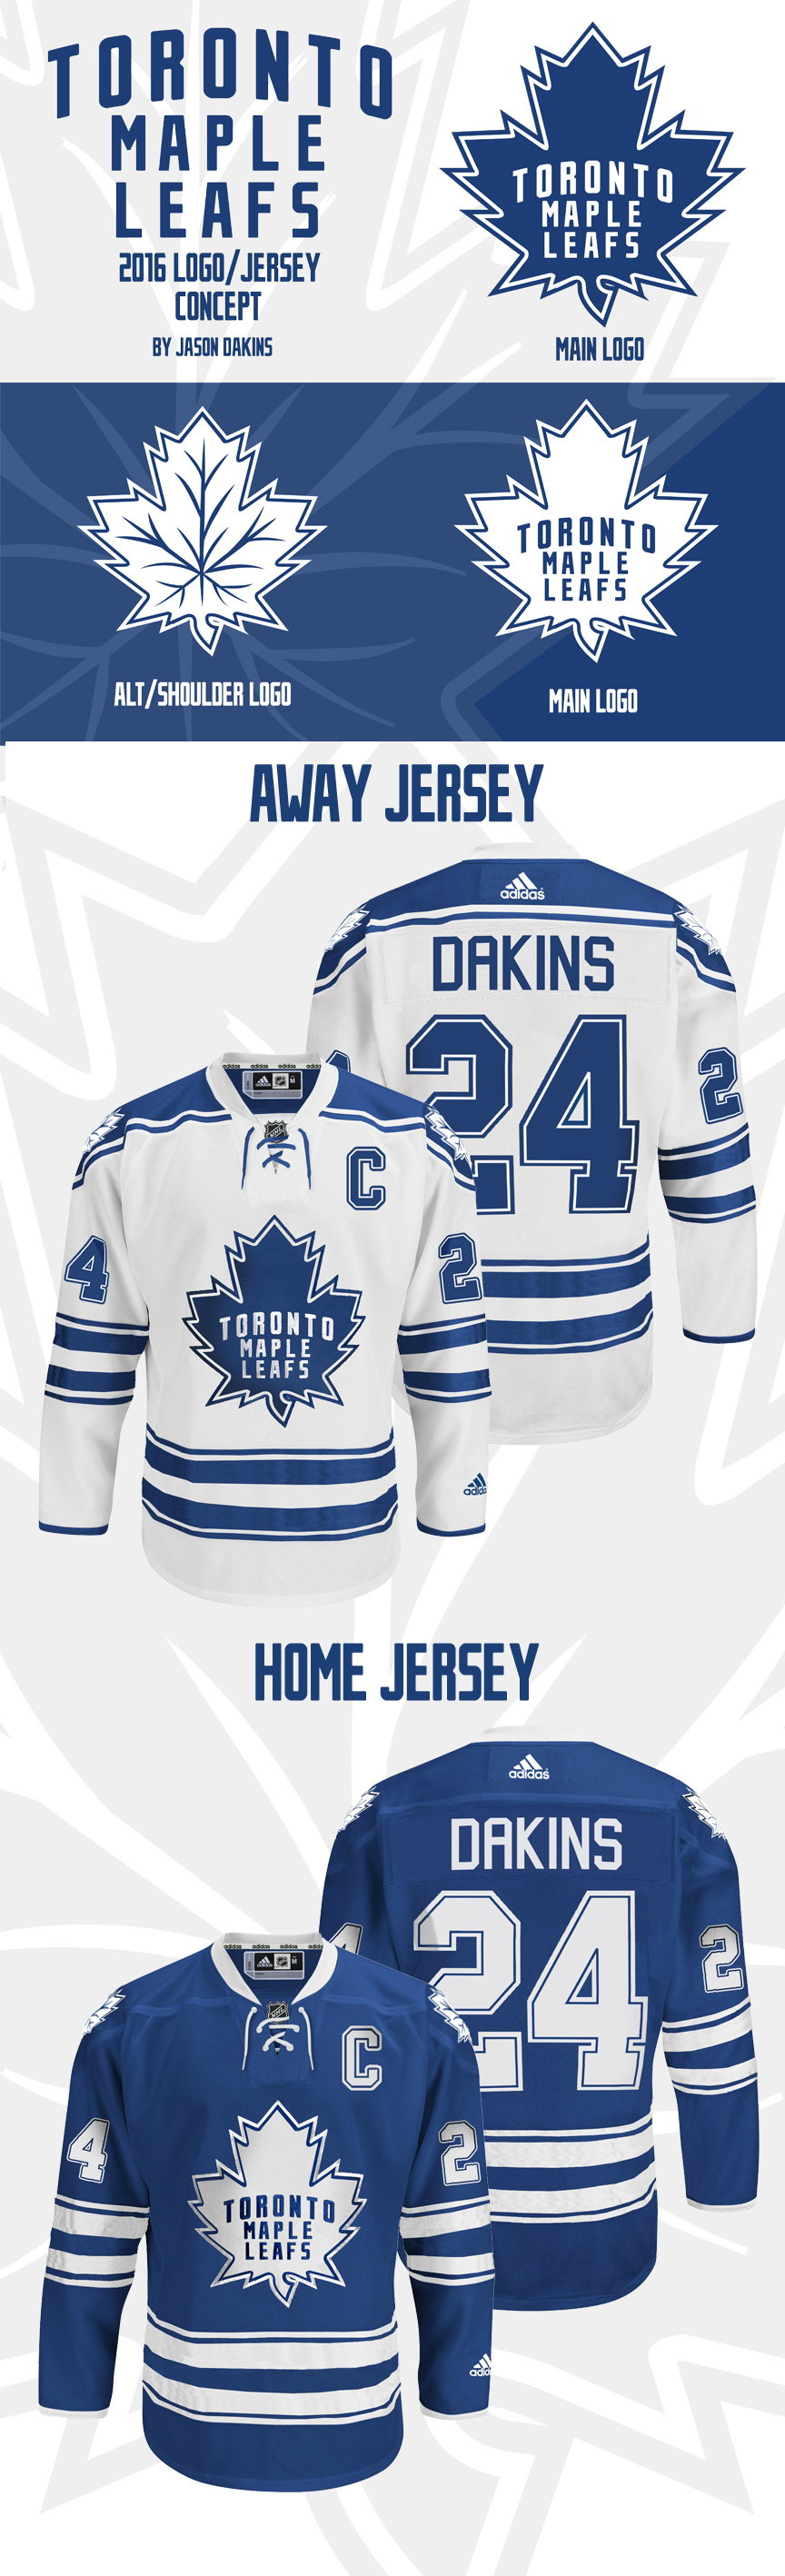 on sale 0b5d1 d8f10 DAKINS' 2016/2017 Toronto Maple Leafs Logo/Jersey Concept ...